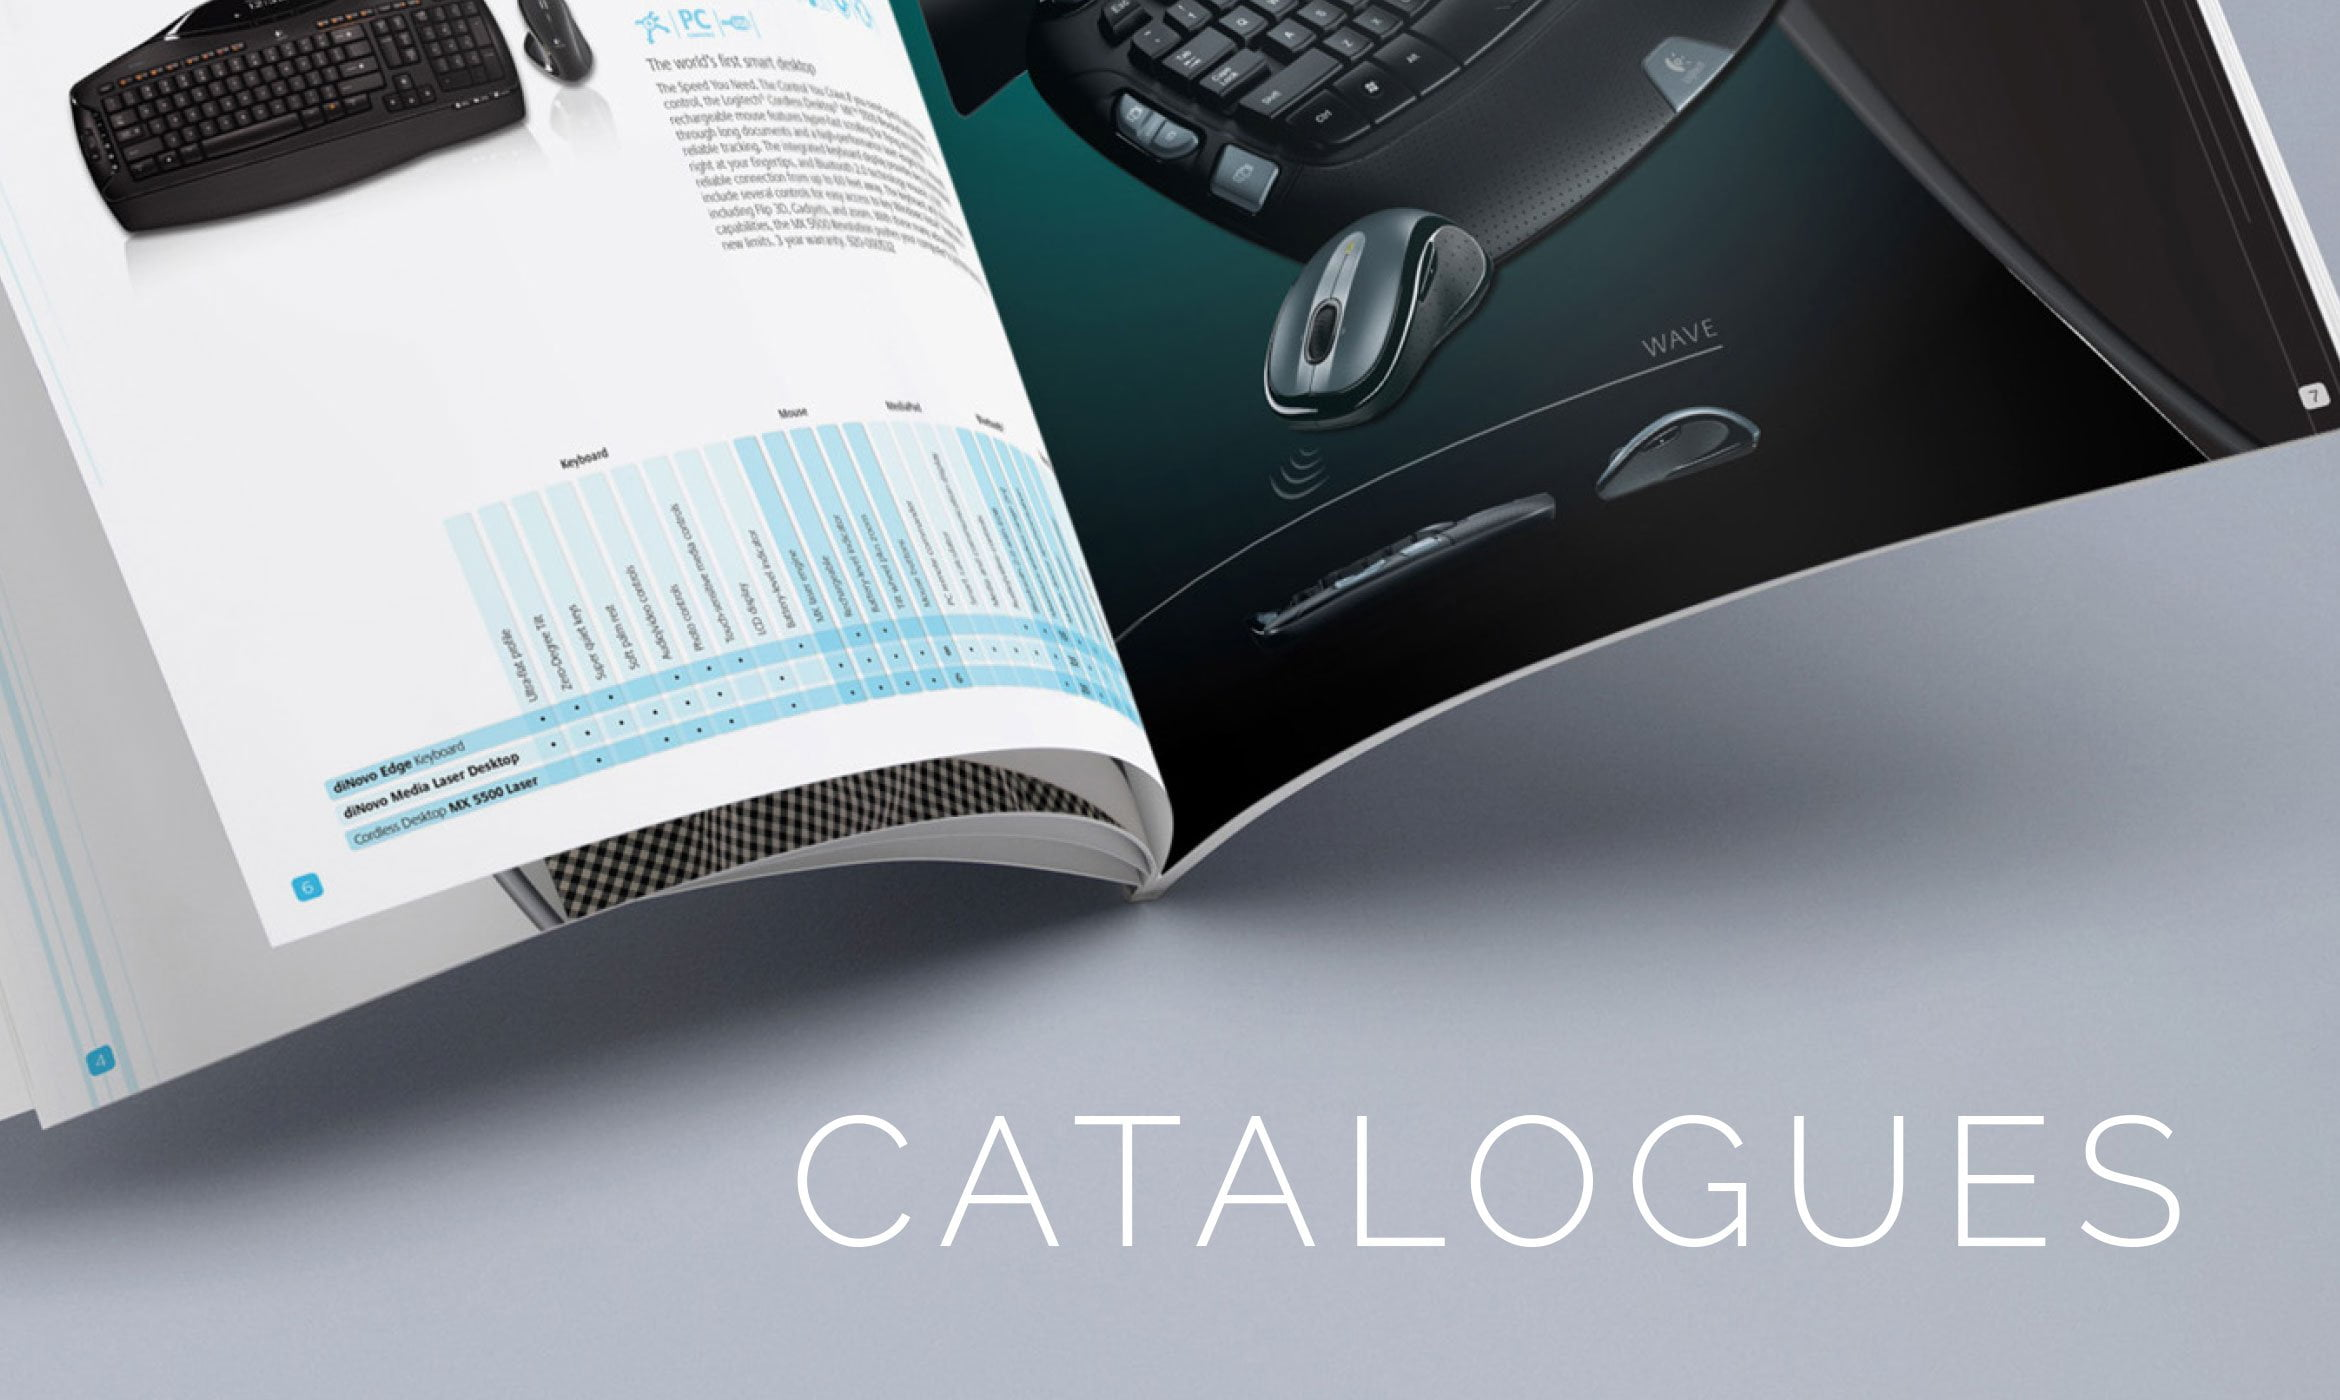 Catalogues 1 - Home